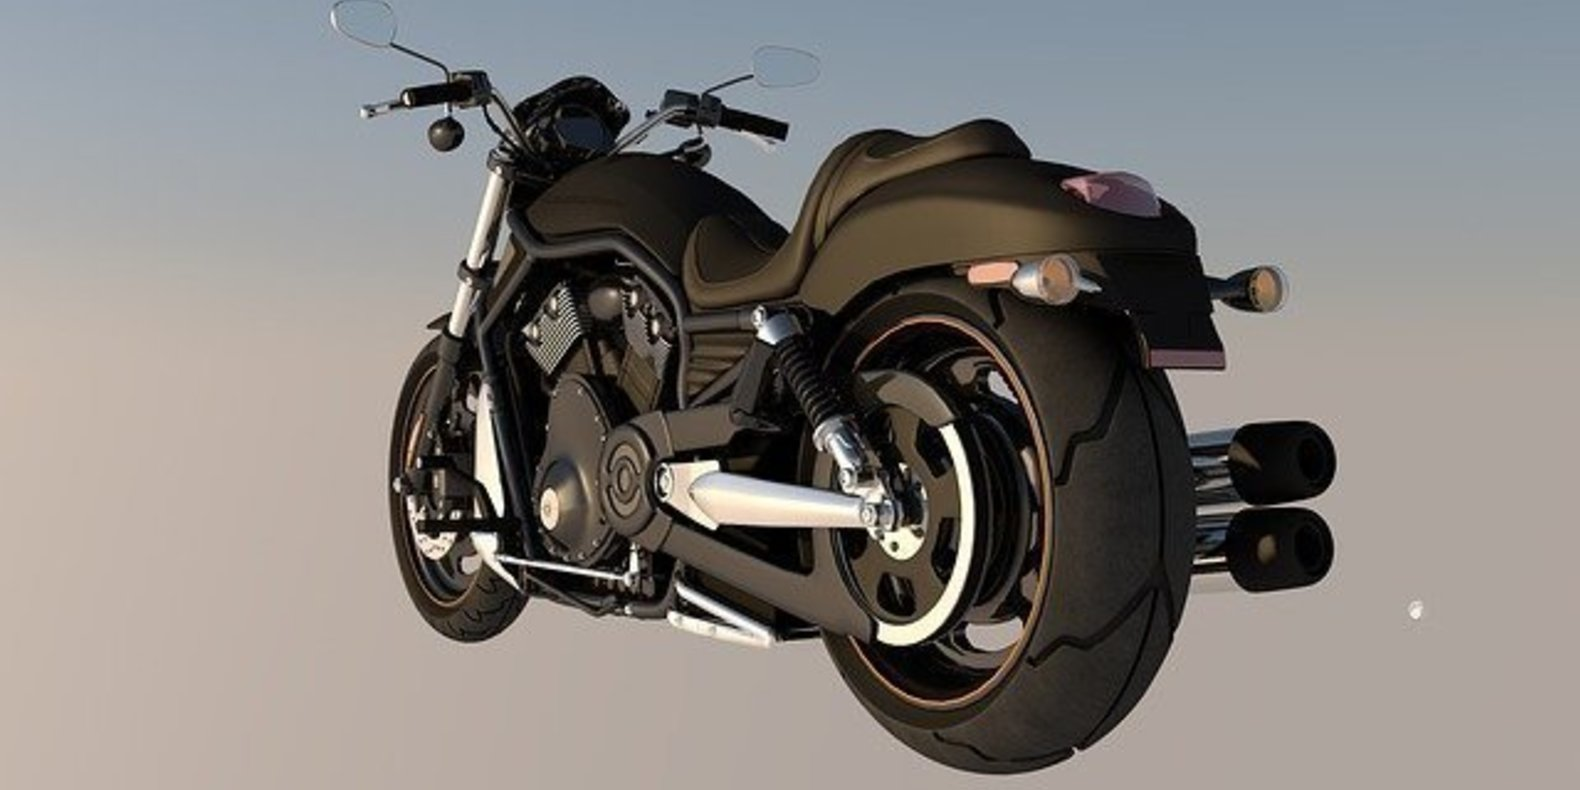 3D Printing in the Motorcycle Industry